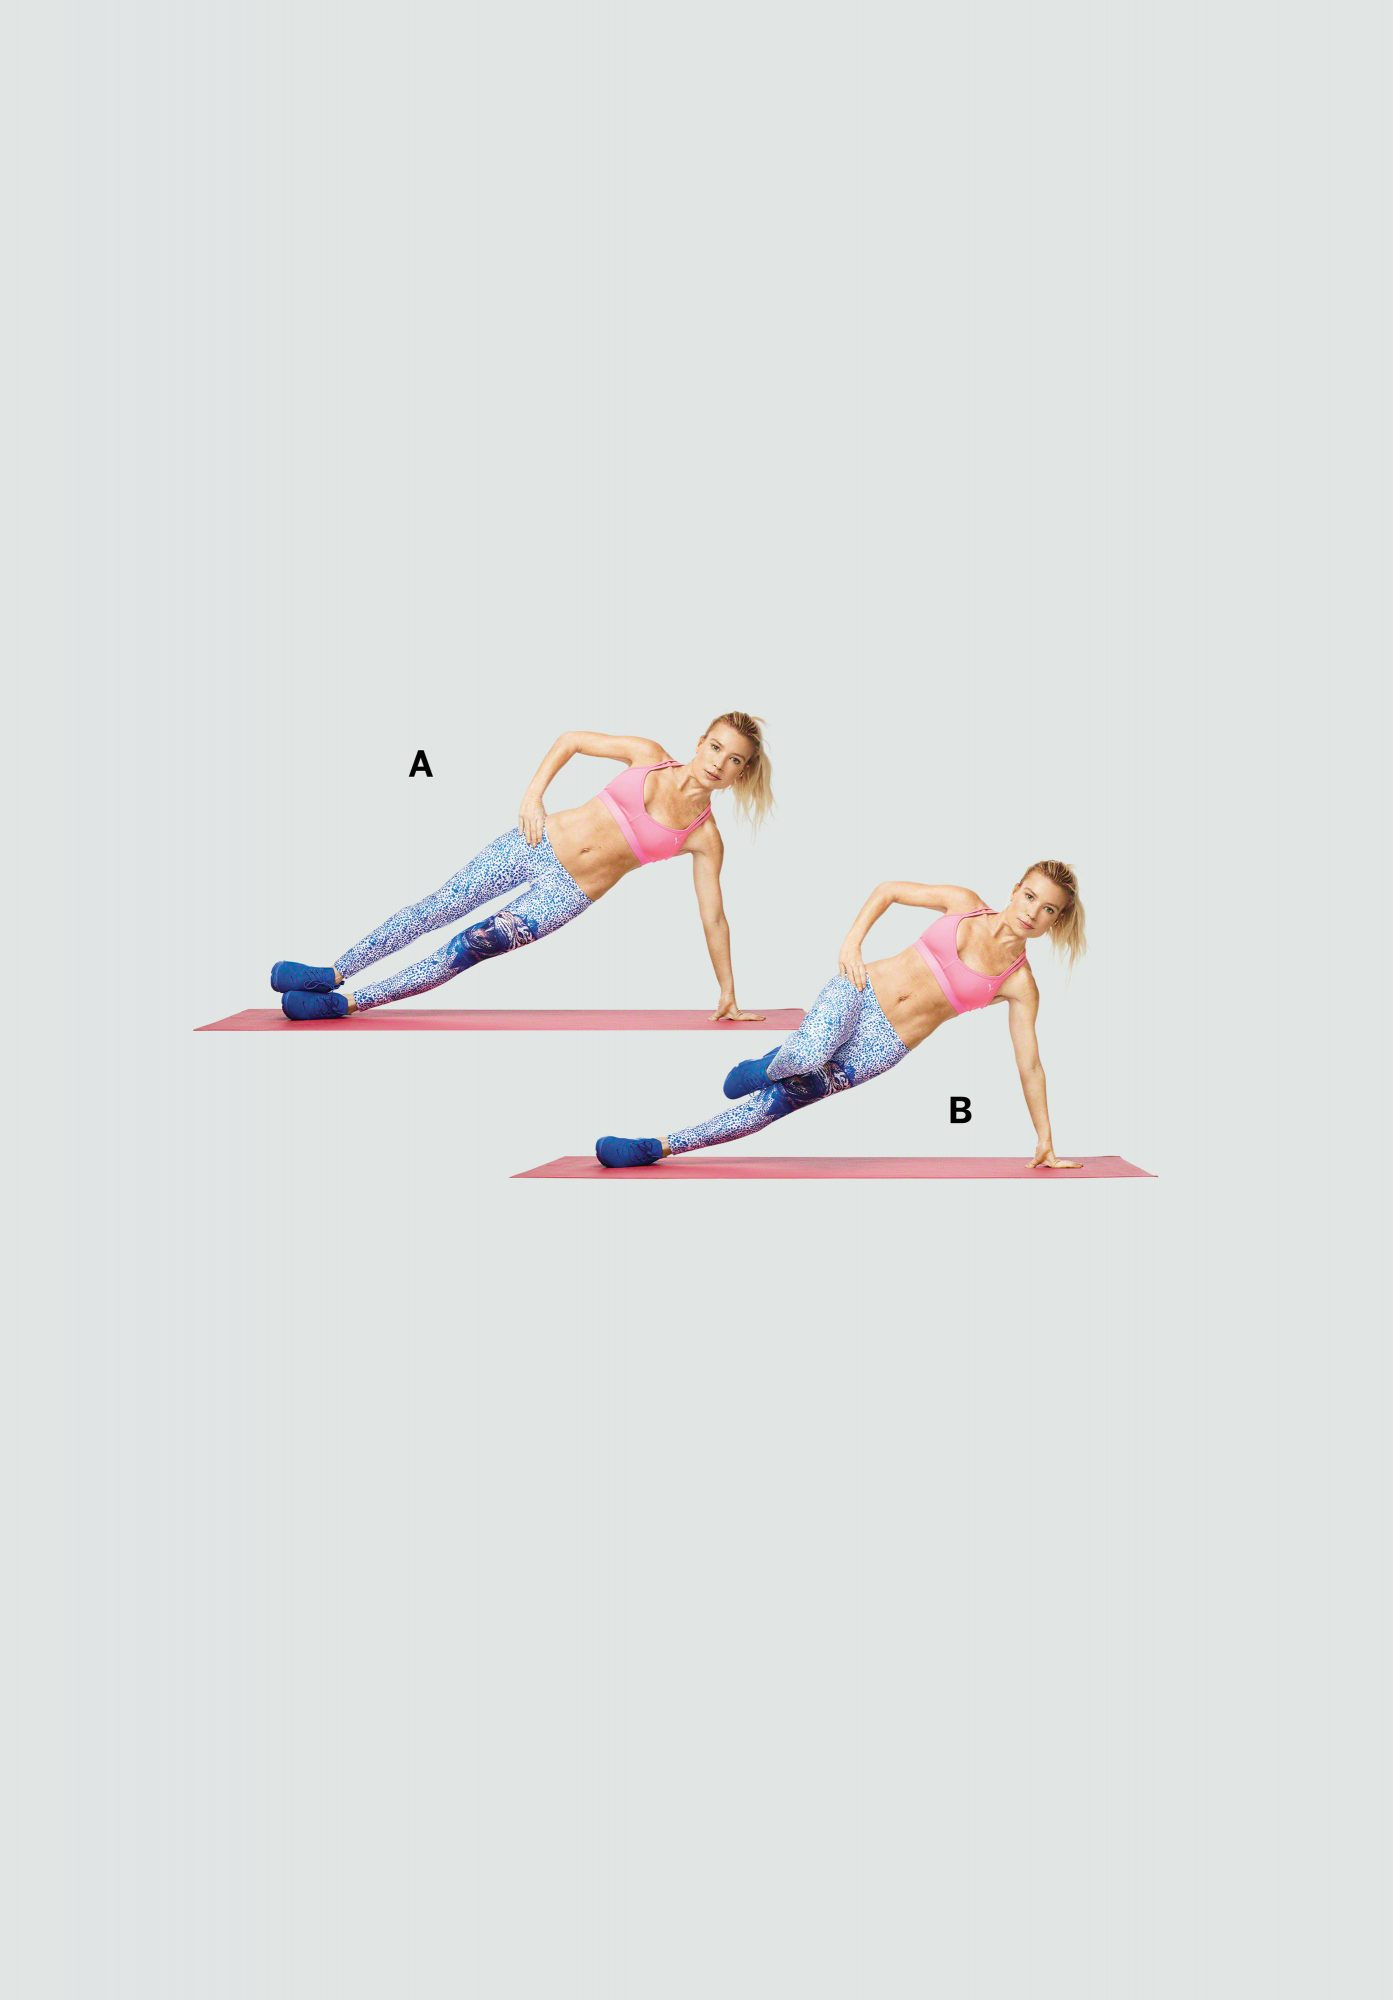 parallel-knee-pull-side-plank-anderson-core